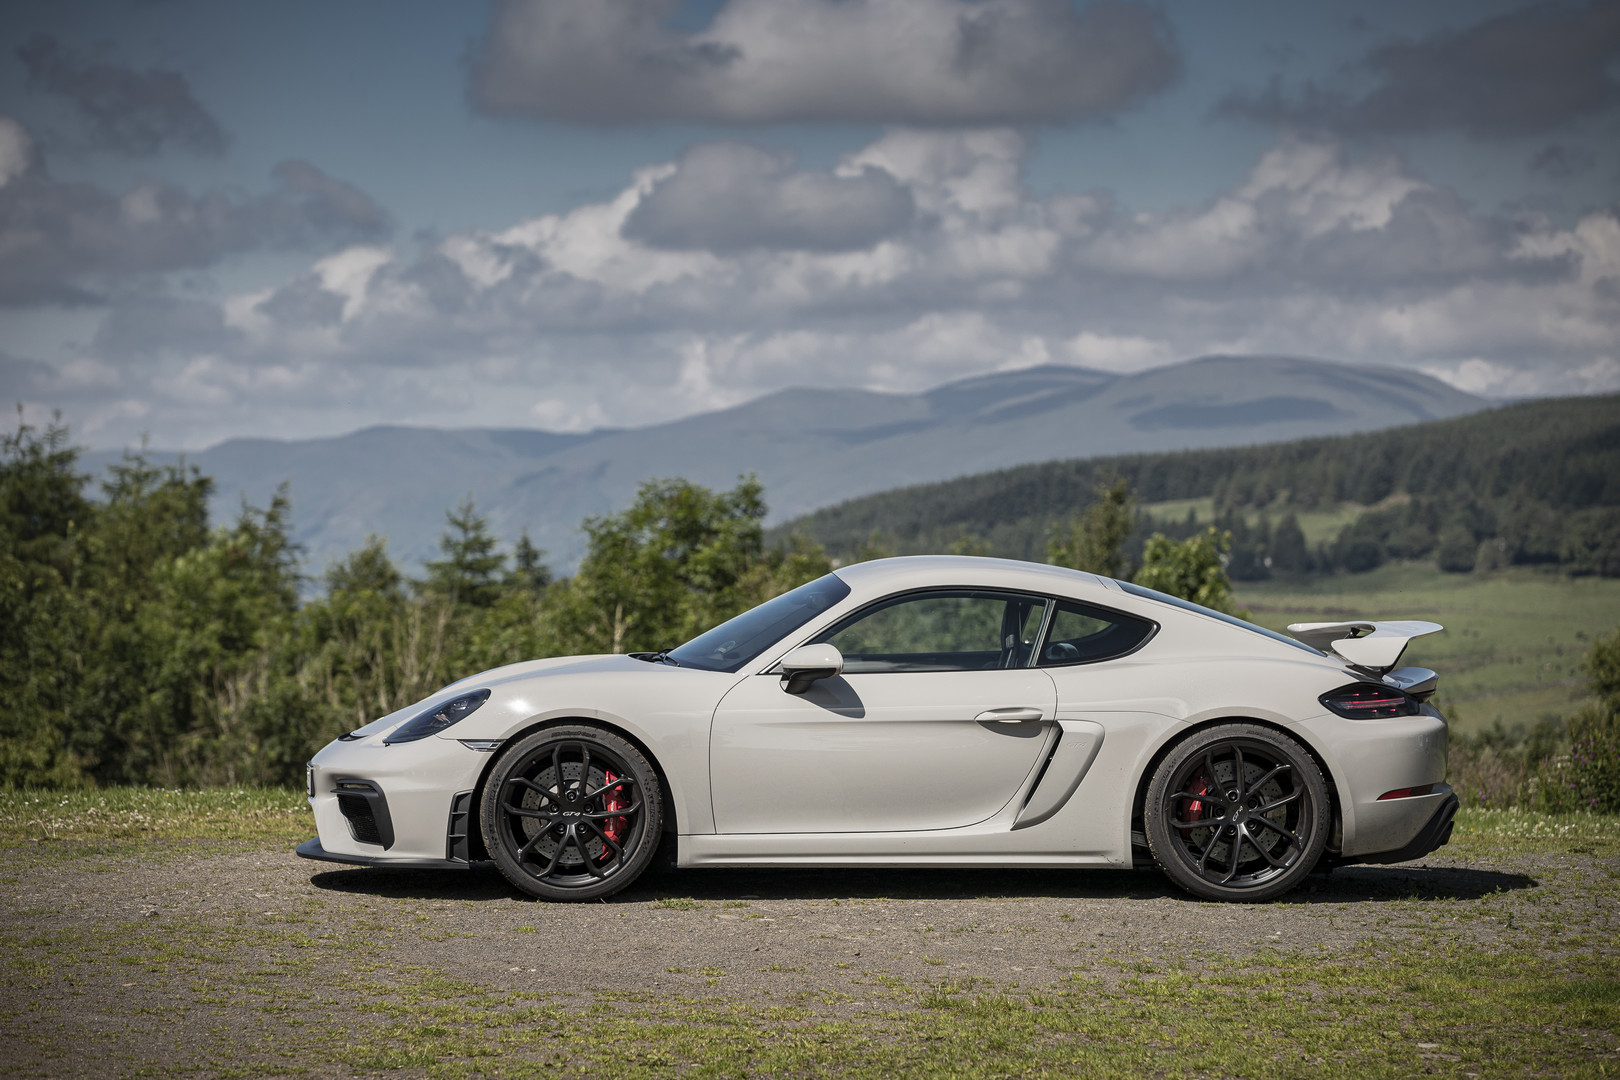 Porsche 718 Cayman GT4 Side View